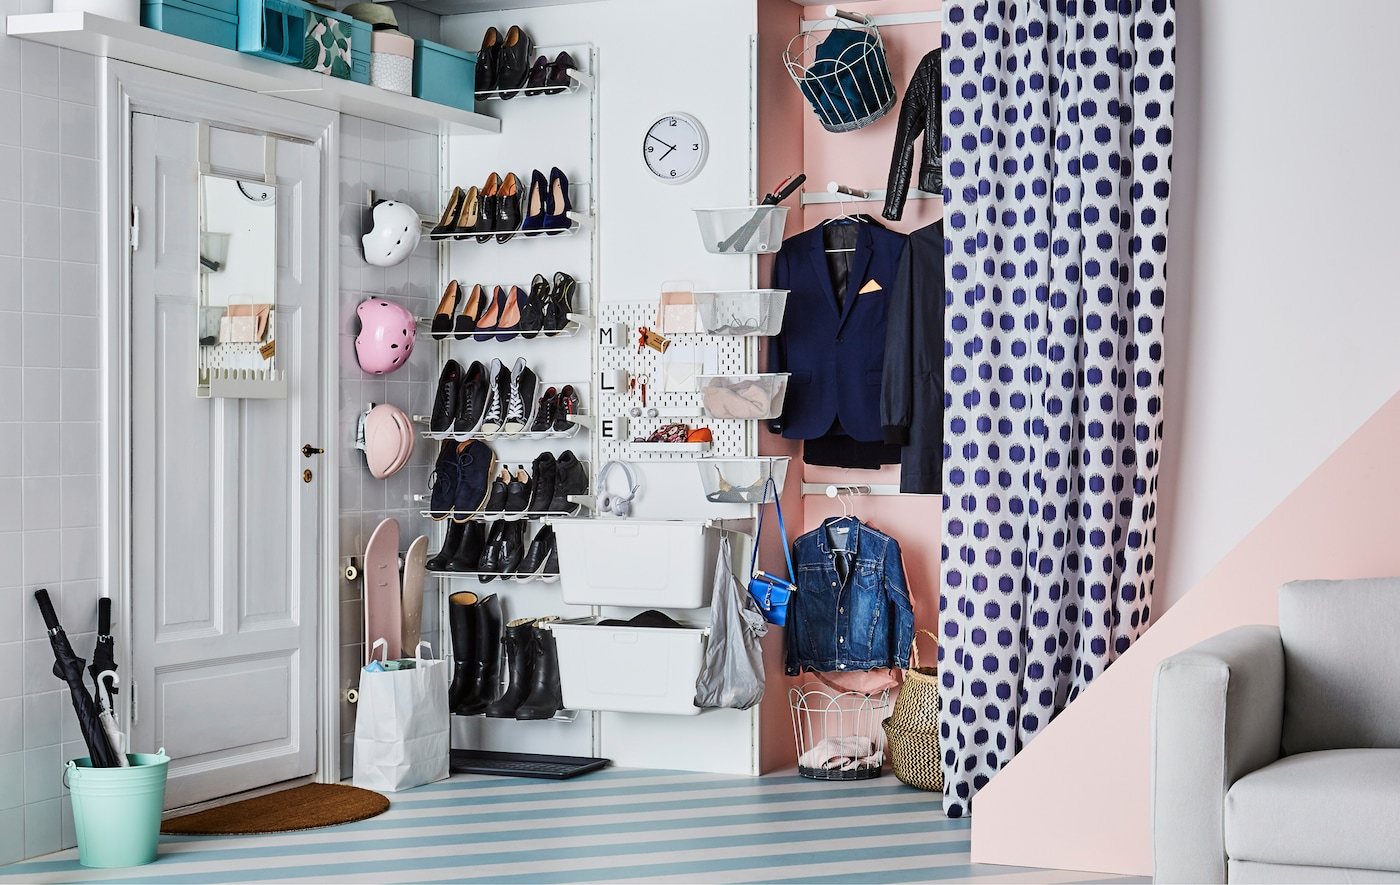 An organised hallway by the door filled with shoes and coats and things for a family of three